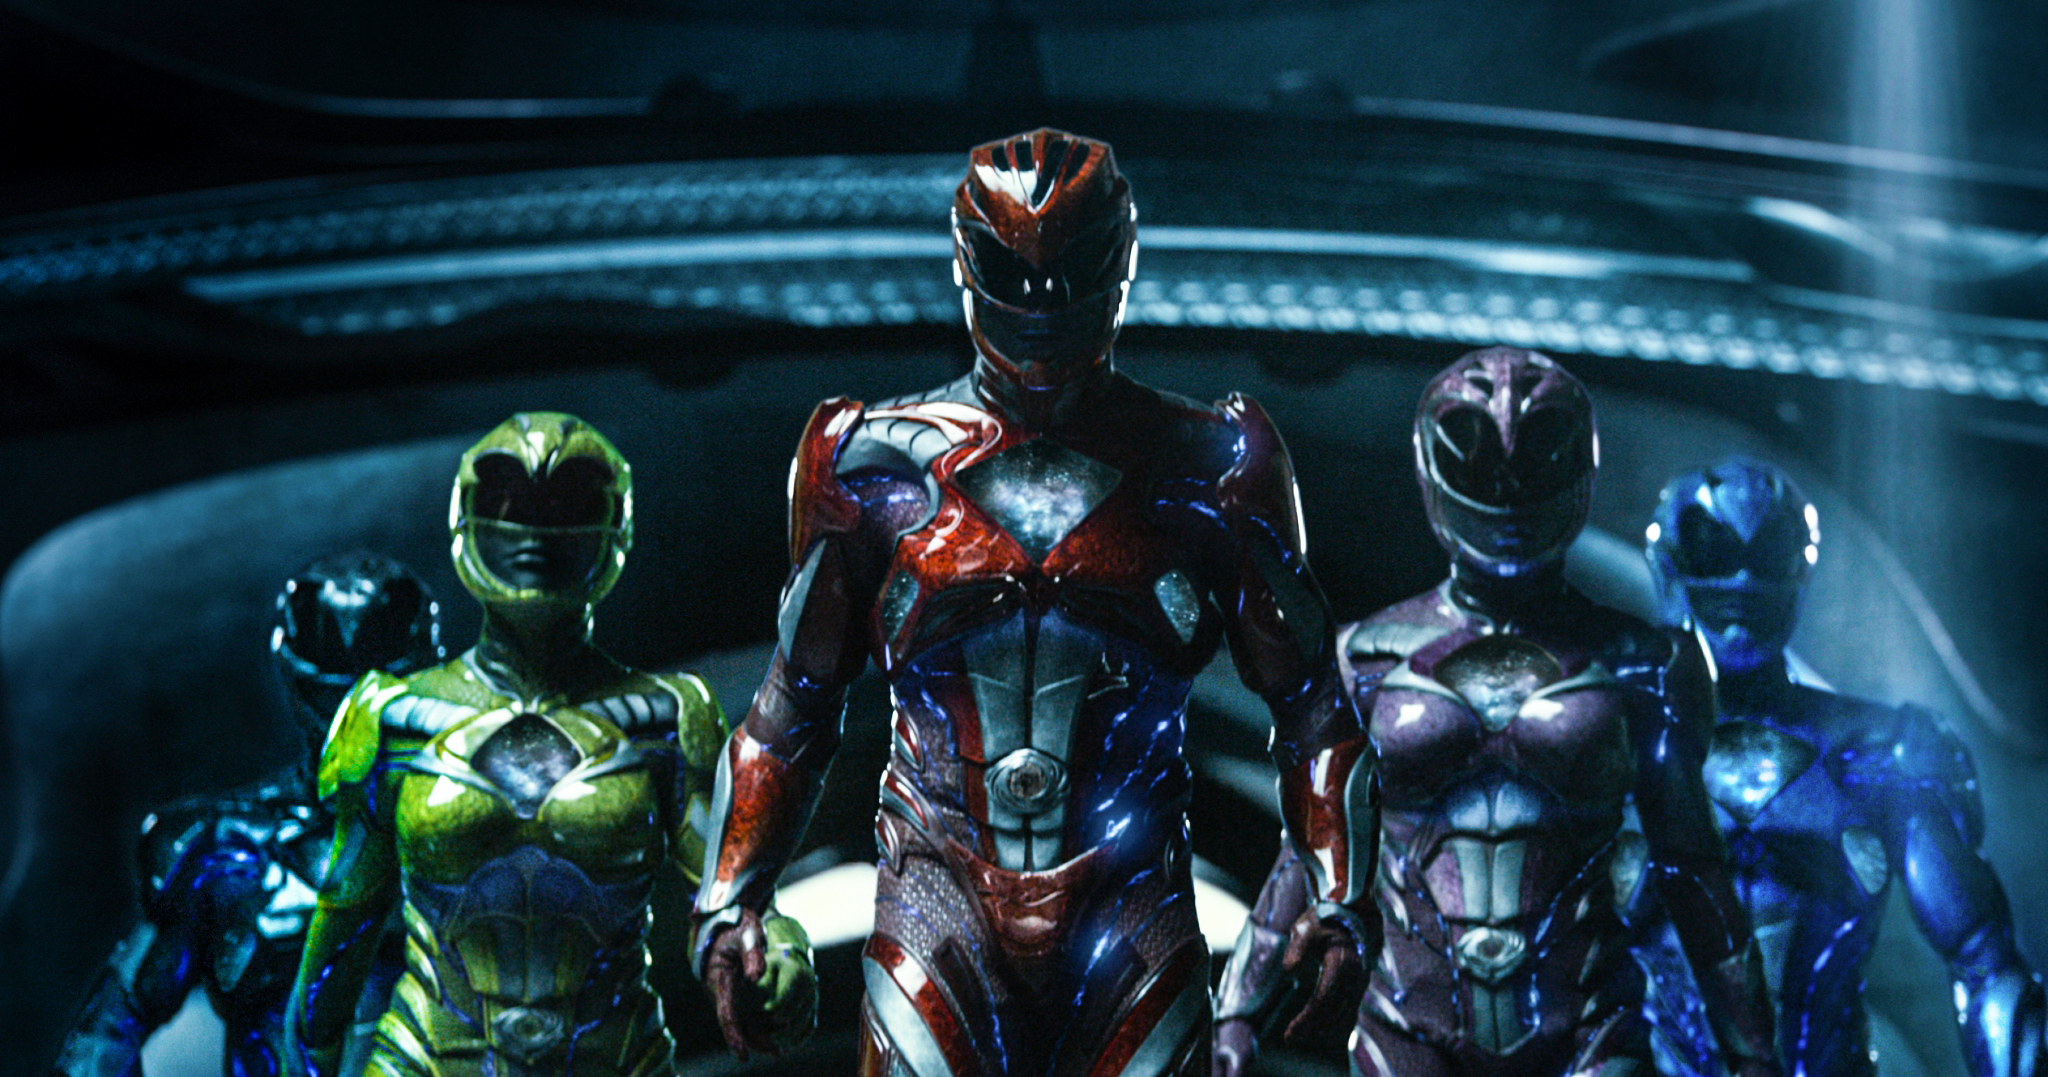 50 Power Rangers 2017 HD Wallpapers Background Images 2048x1077